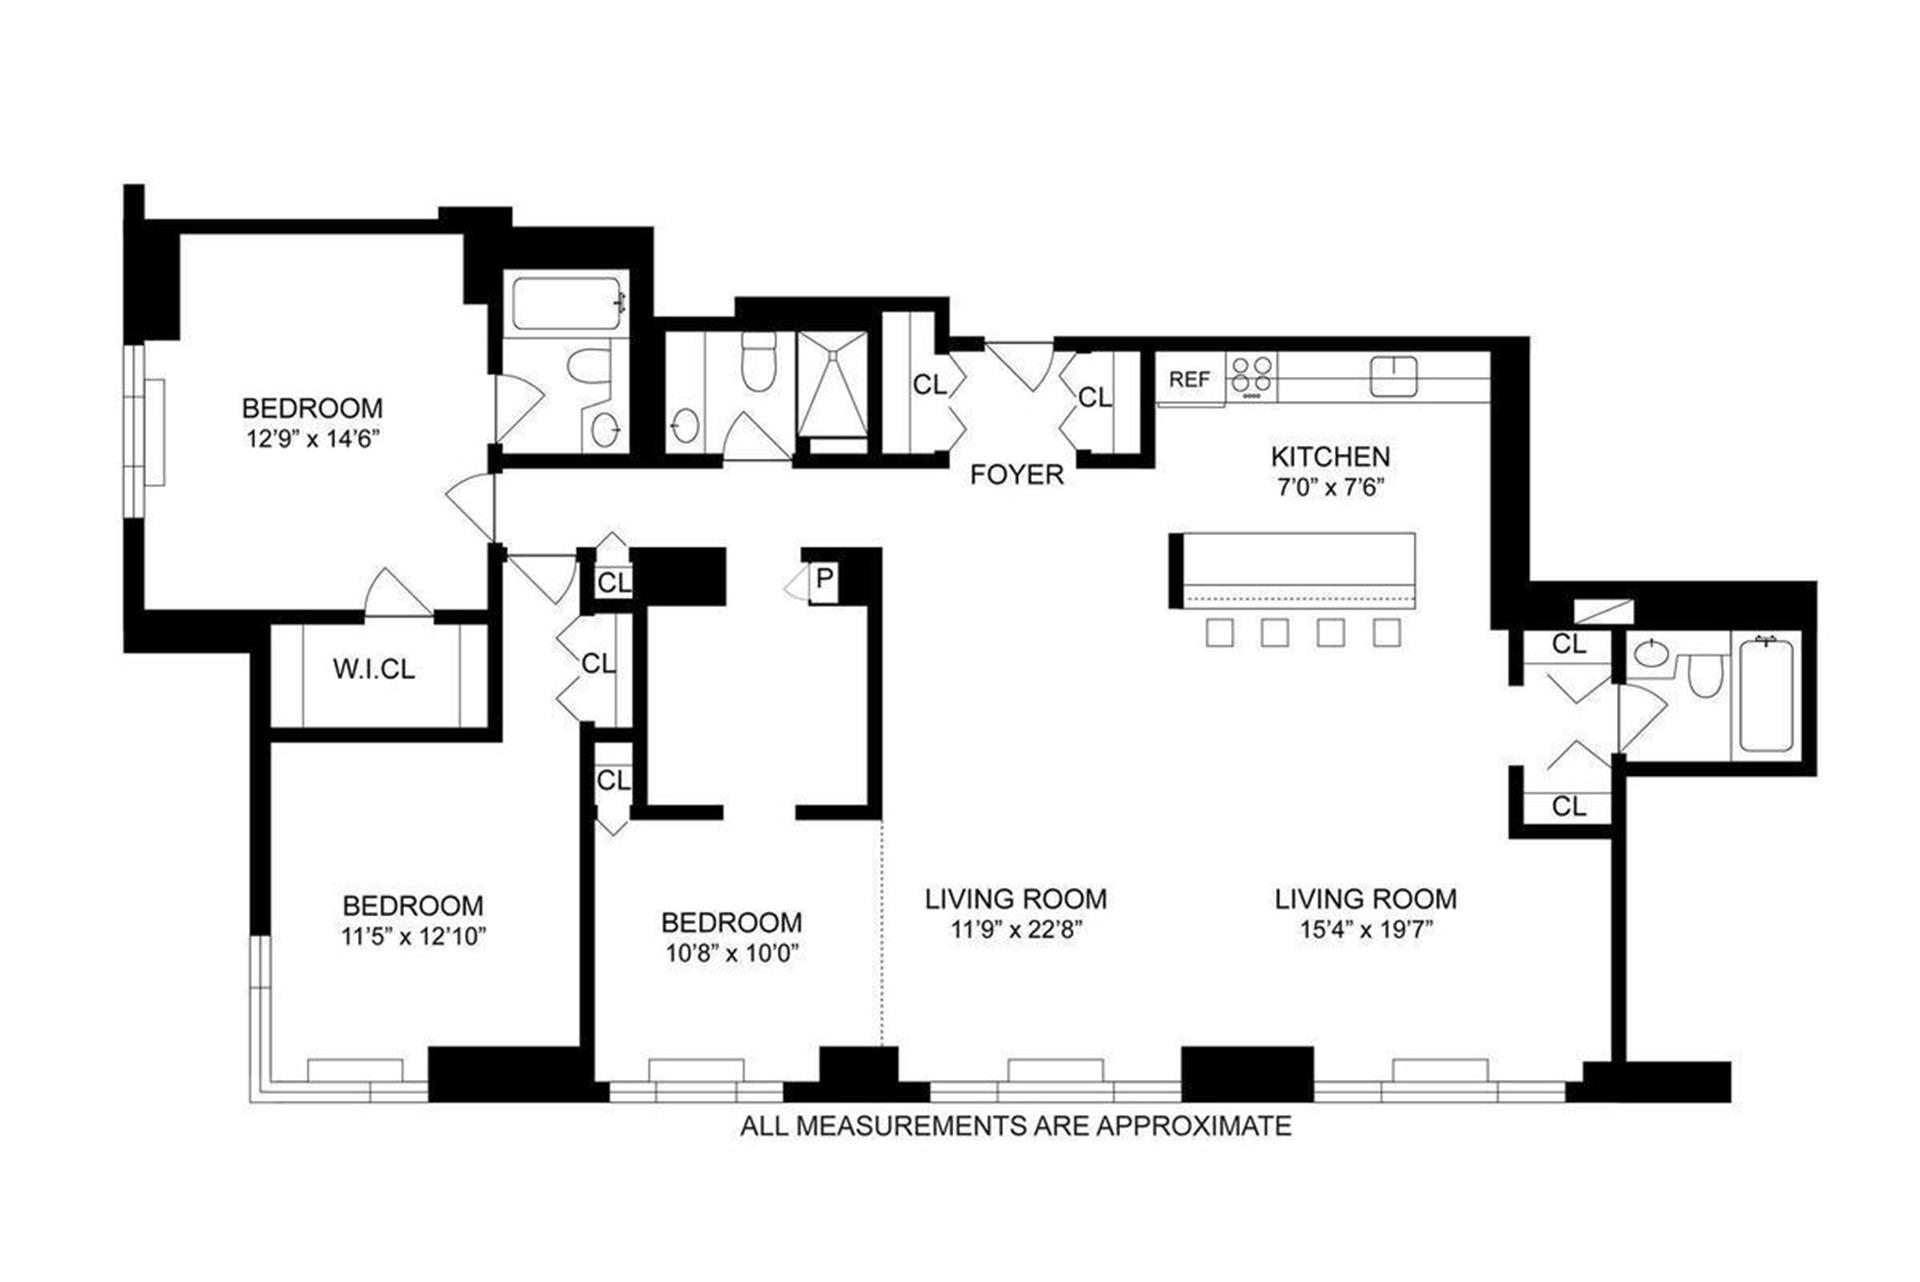 Floor plan of THE BEAUMONT, 30 West 61st St, 9HC - Lincoln Square, New York